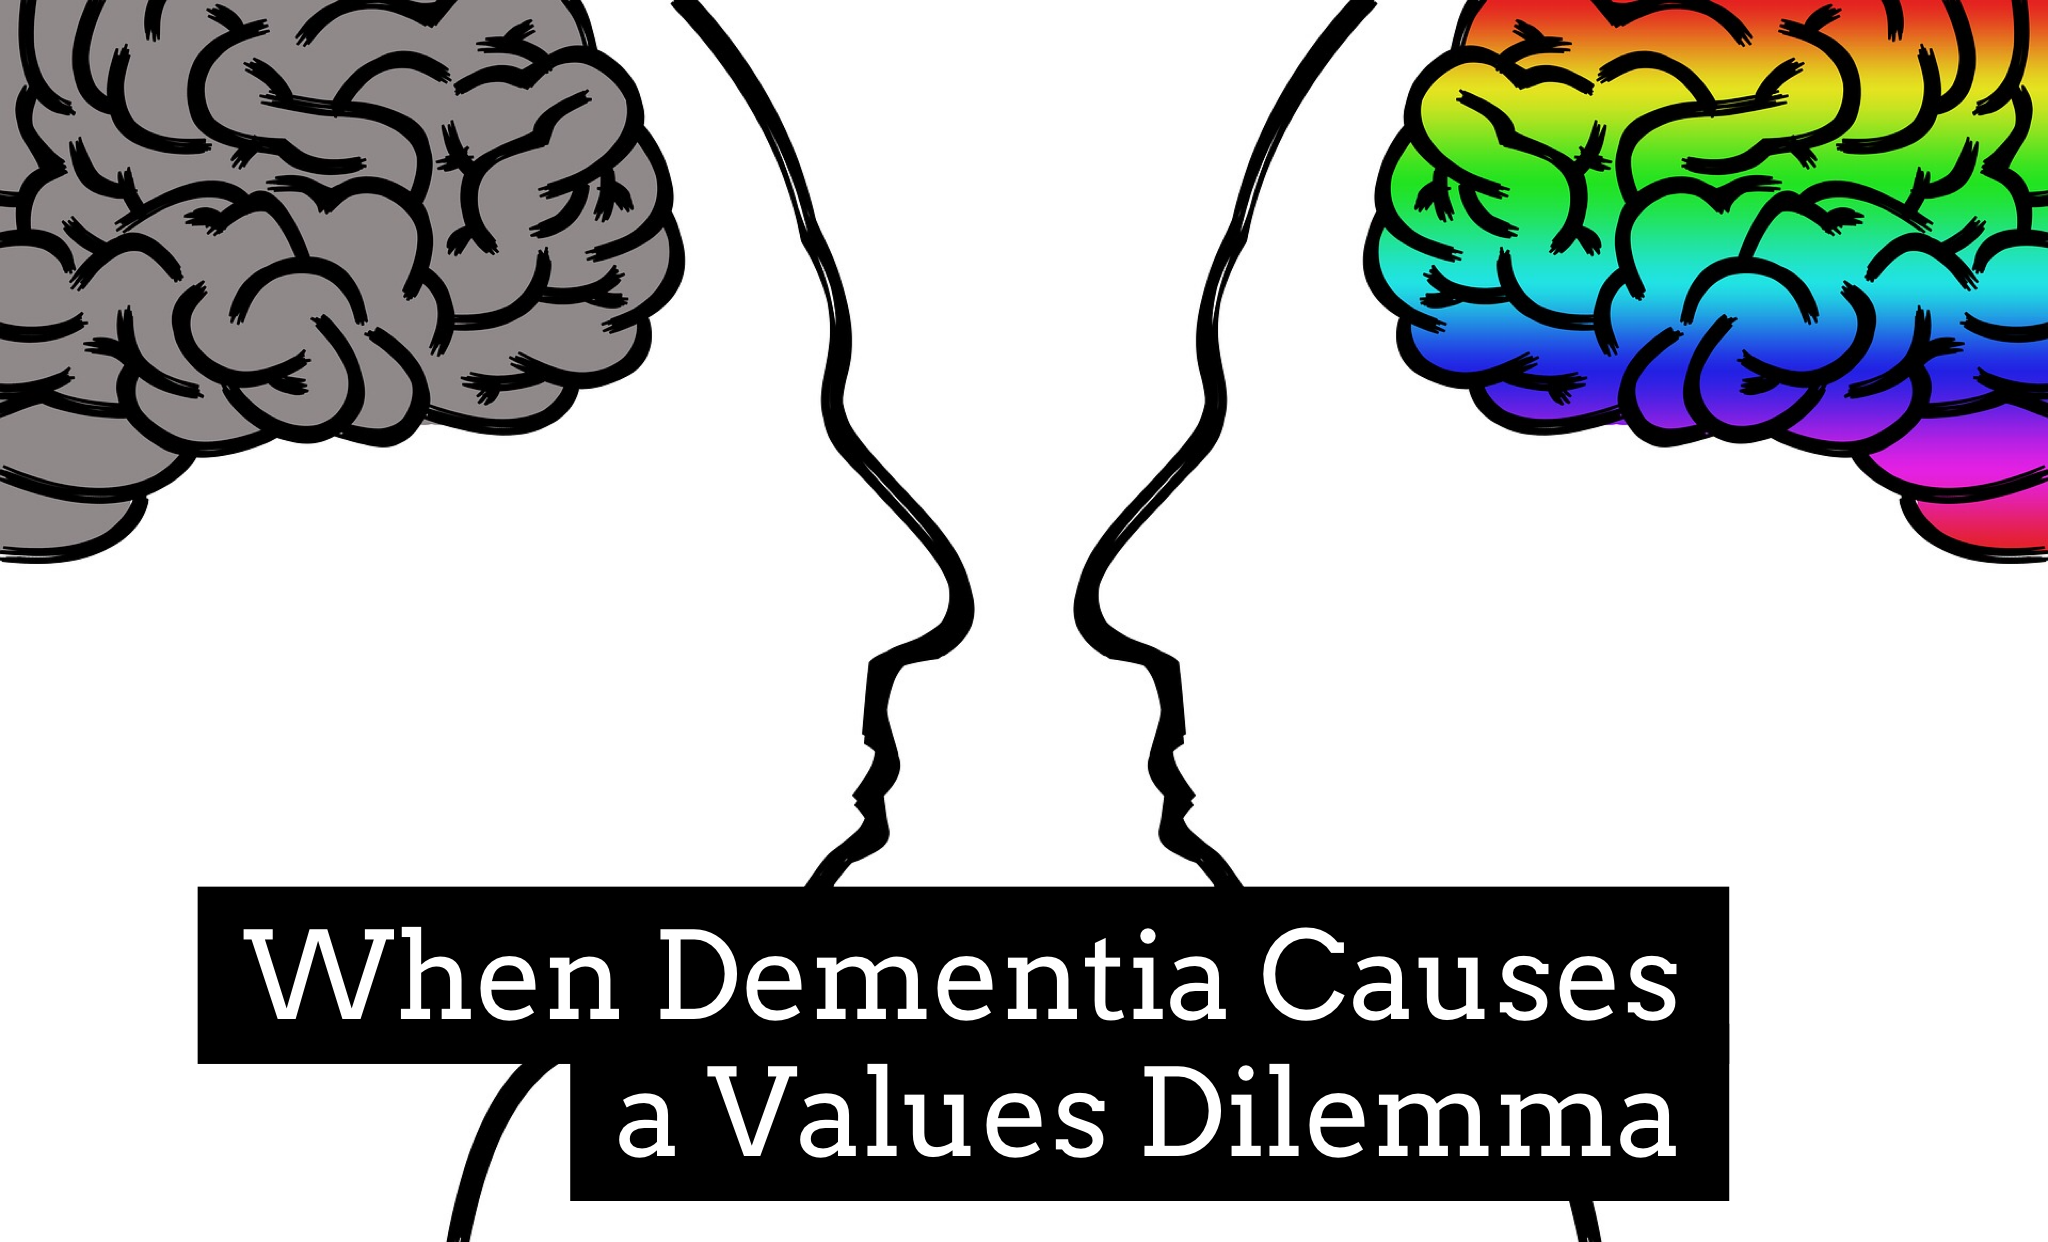 when dementia causes a value dilemma